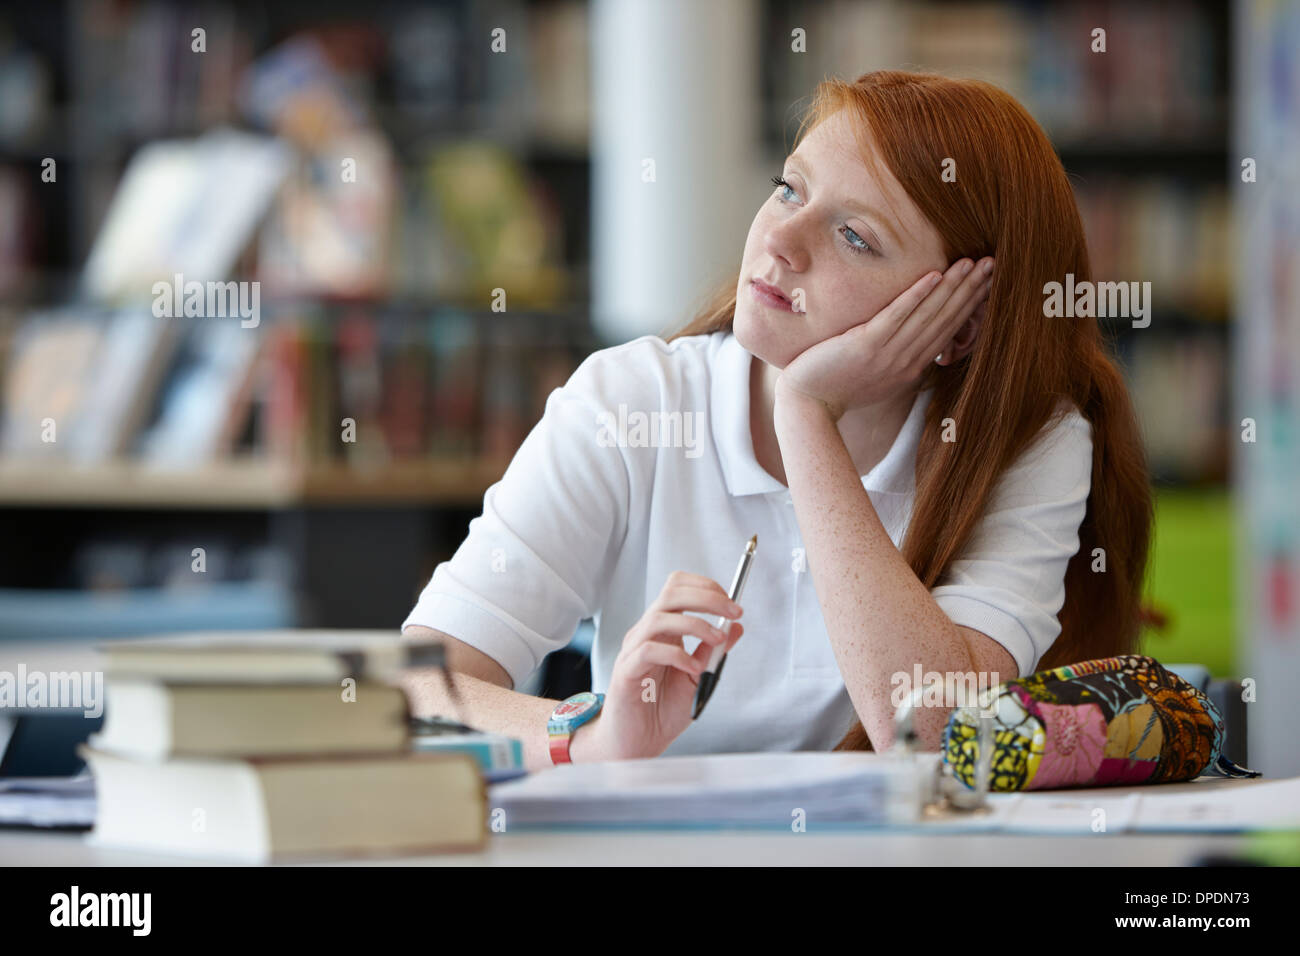 Portrait of teenage girl daydreaming in library Banque D'Images